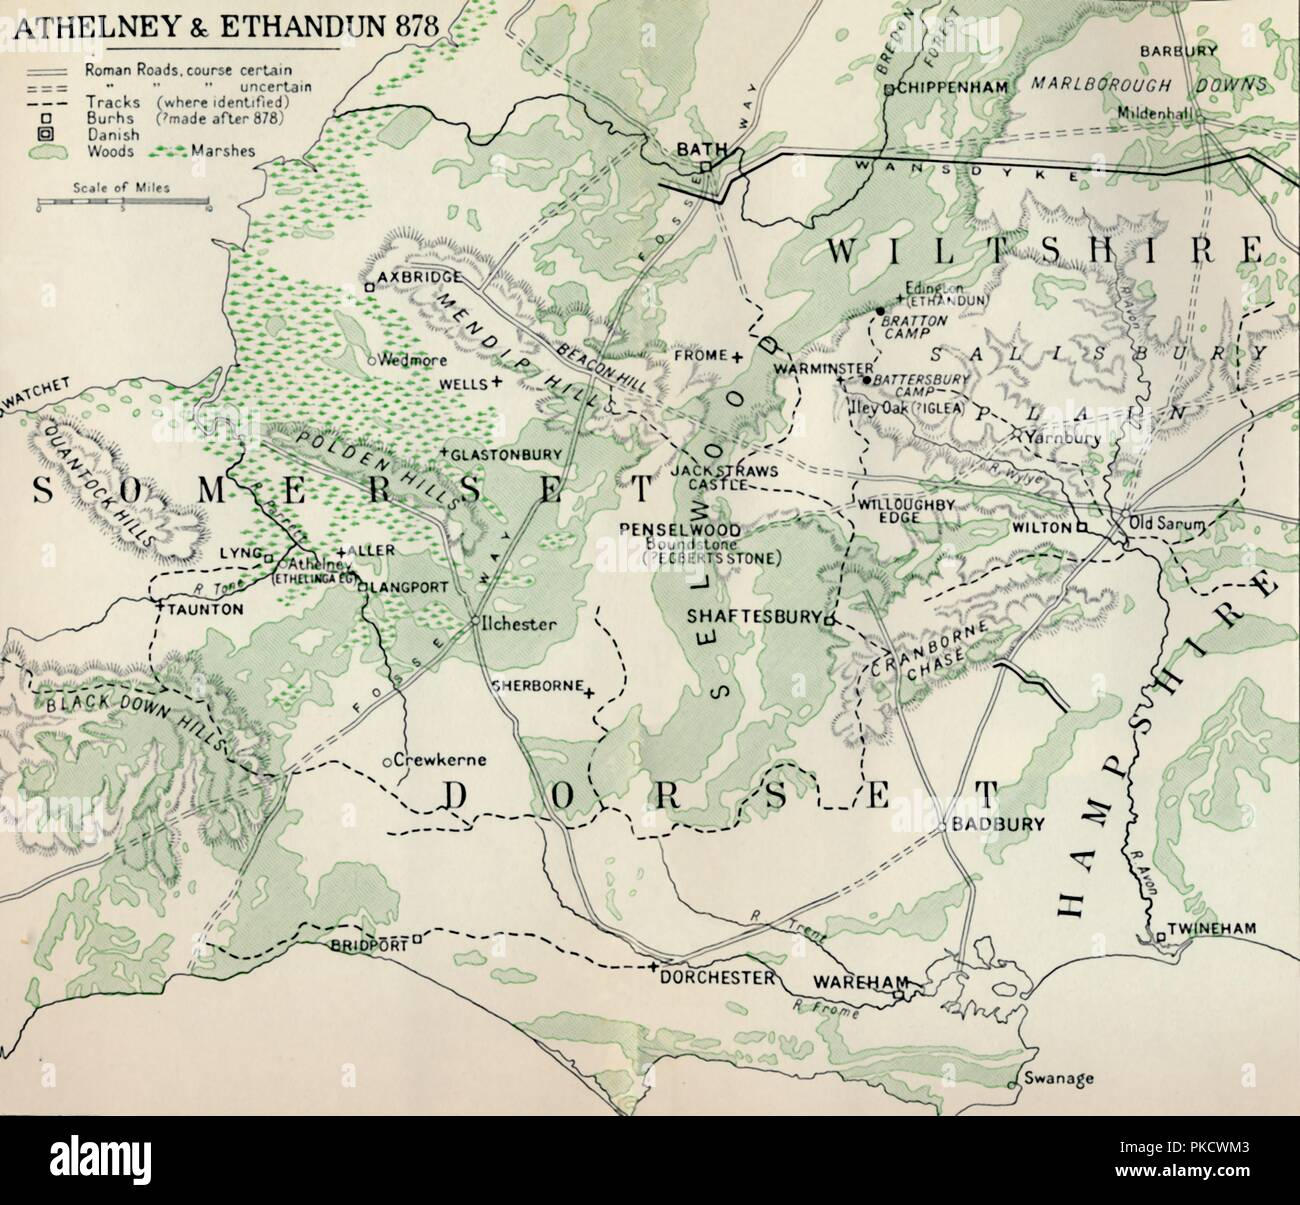 'Athelney & Ethandun 878', (1935). Map of part of the west of England (modern Somerset, Dorset, Wiltshire and Hampshire), showing Athelney, which was once the fortress hiding place of King Alfred the Great. From there he went on to defeat the Danes at the Battle of Edington (or Ethandun) in May 878. The map also shows Roman roads and tracks, Alfred's 'Burhs' (Old English fortifications), Danish forts, and significant sites during the period of Viking invasion. From A History of the Anglo-Saxons, Vol. II, by R. H. Hodgkin. [The Clarendon Press, Oxford, 1935] - Stock Image